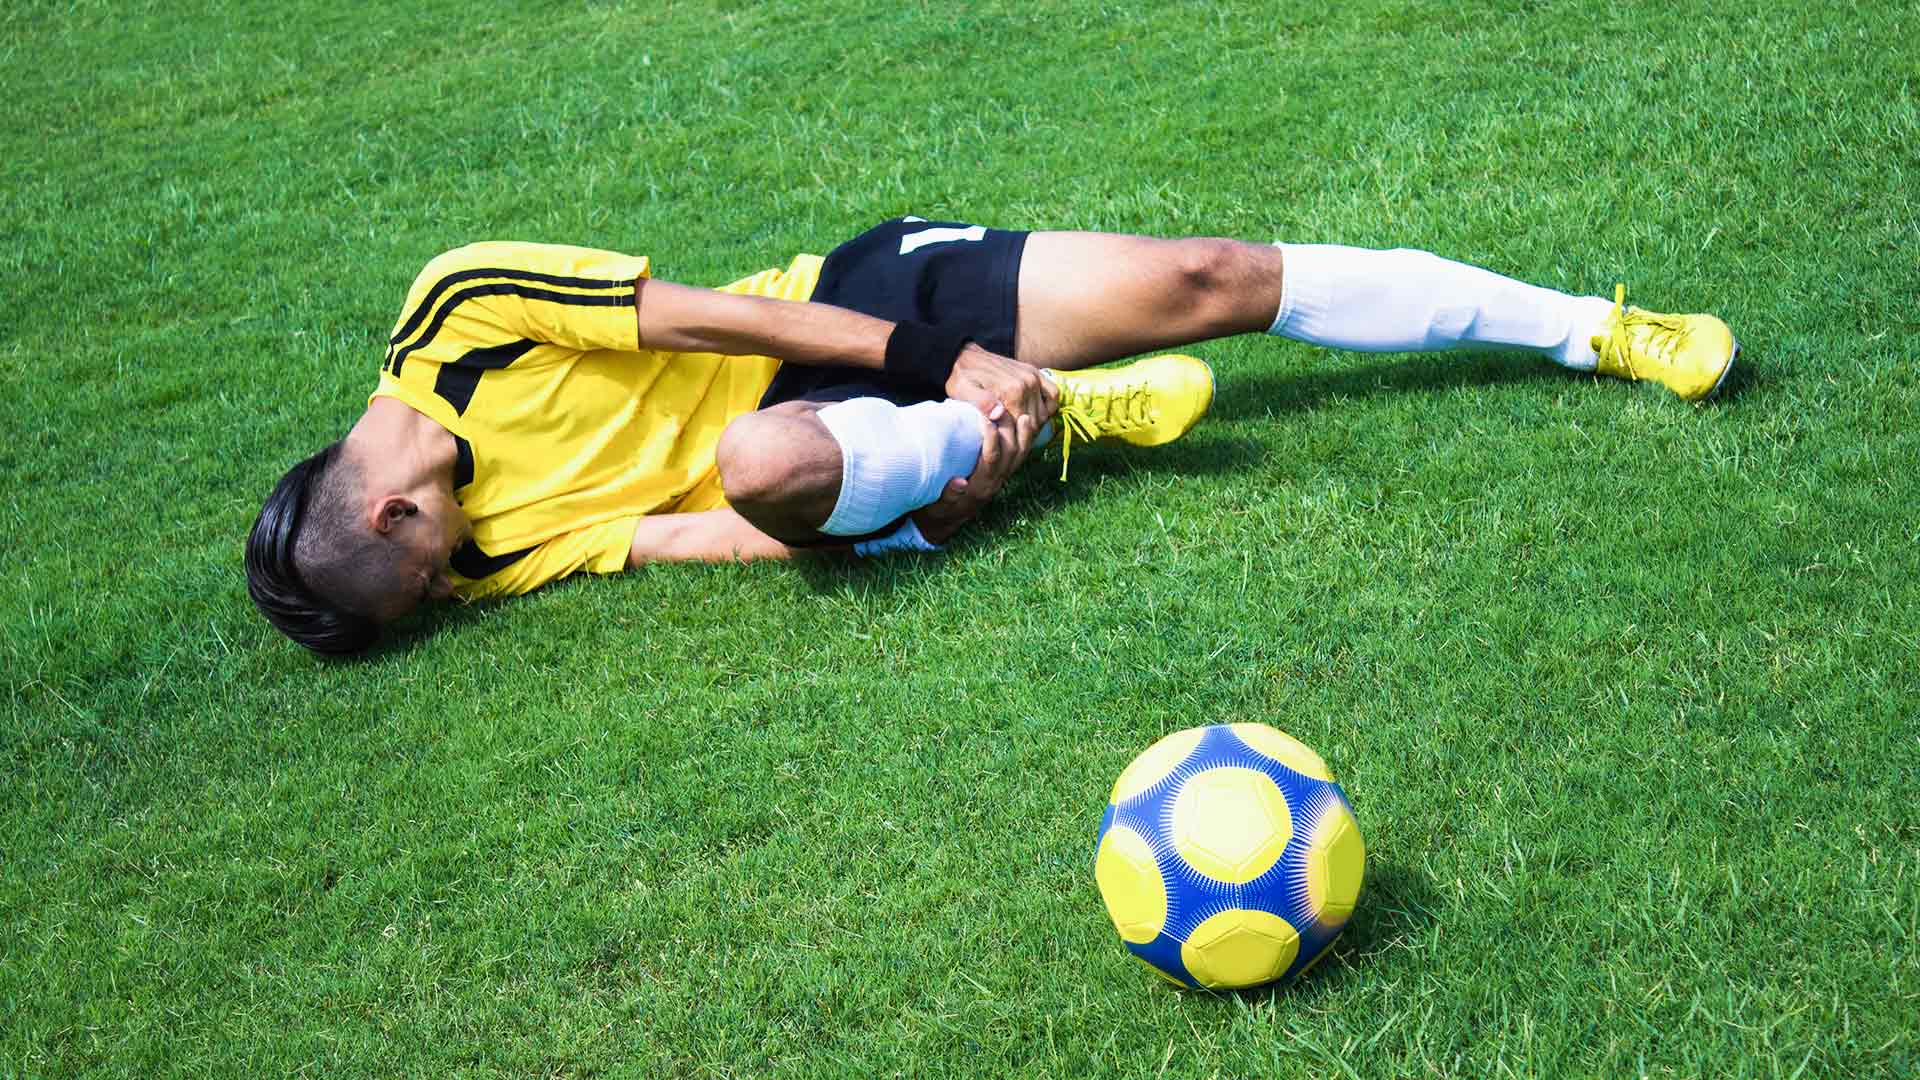 What It Takes for Injured Soccer Players To Get Back on the Field